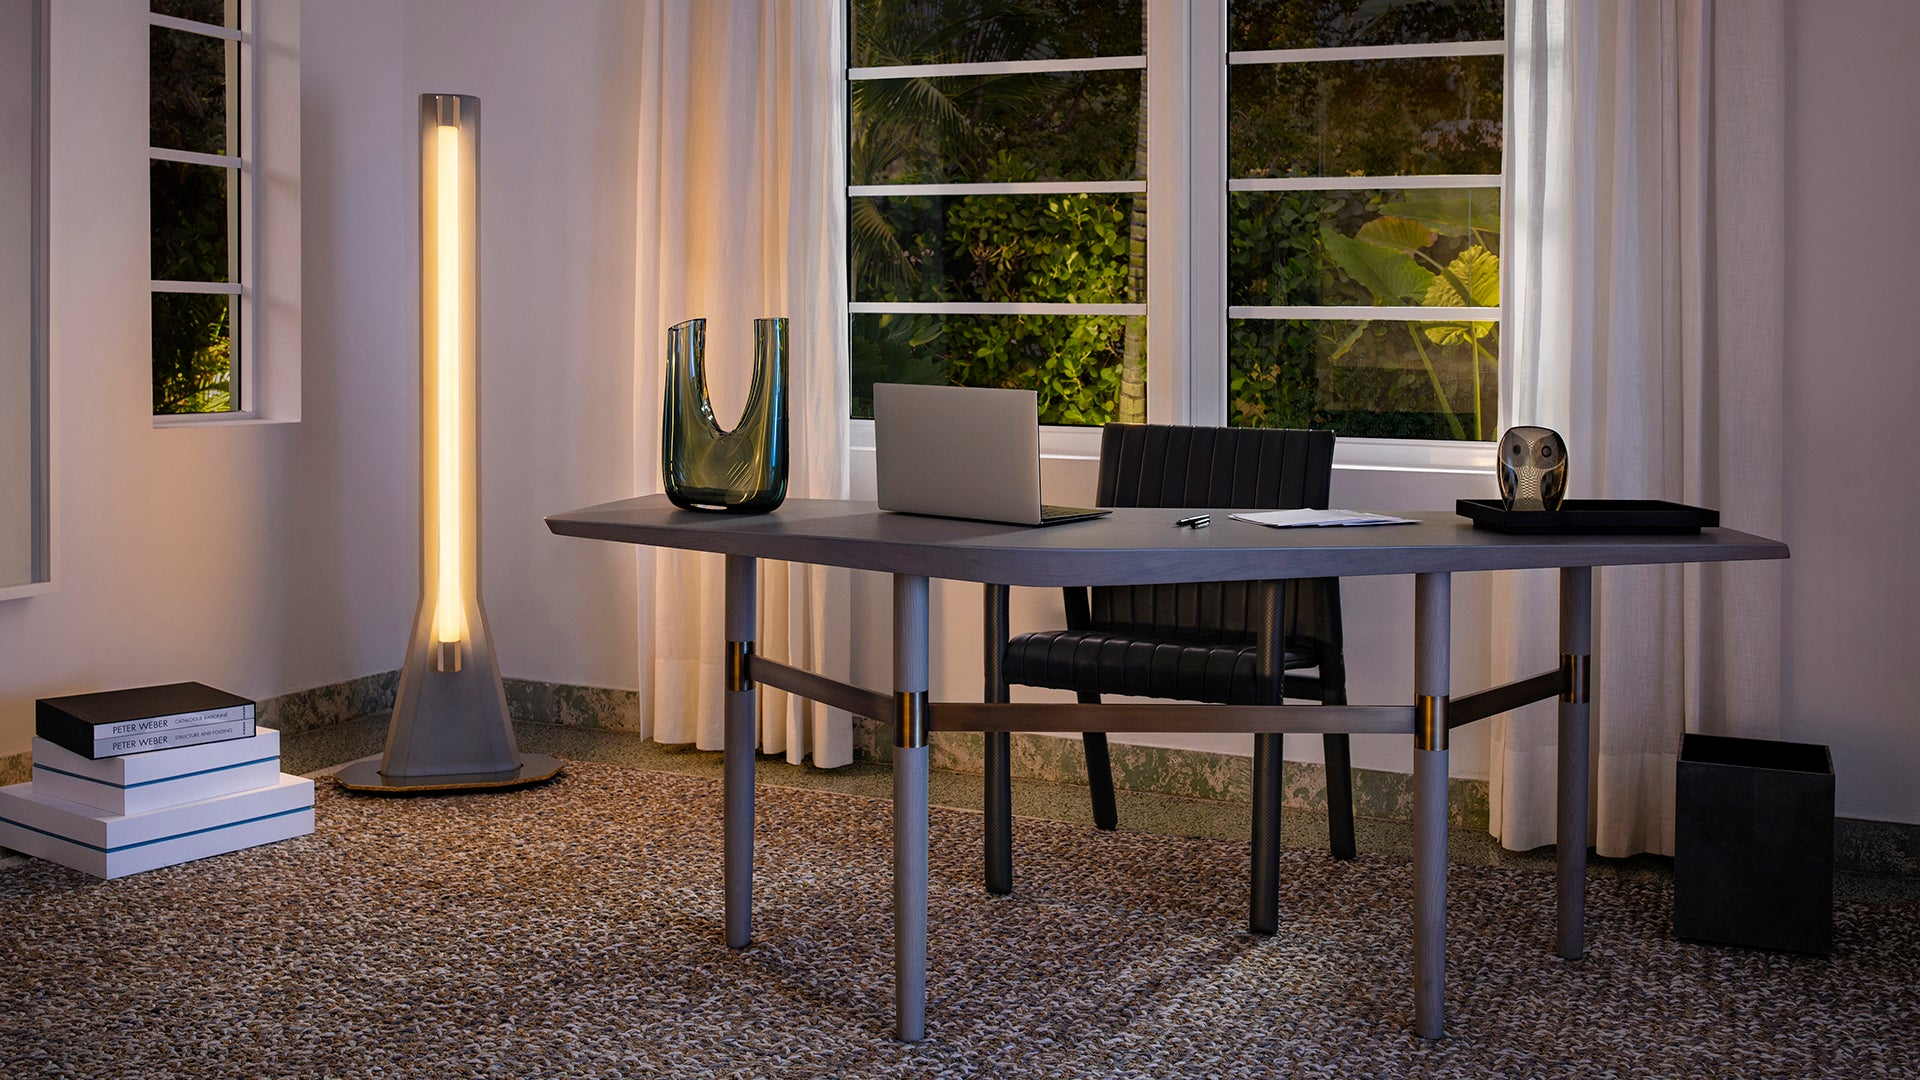 lifestyle | Ginza with Darling Point desk and Alexander Street armchair